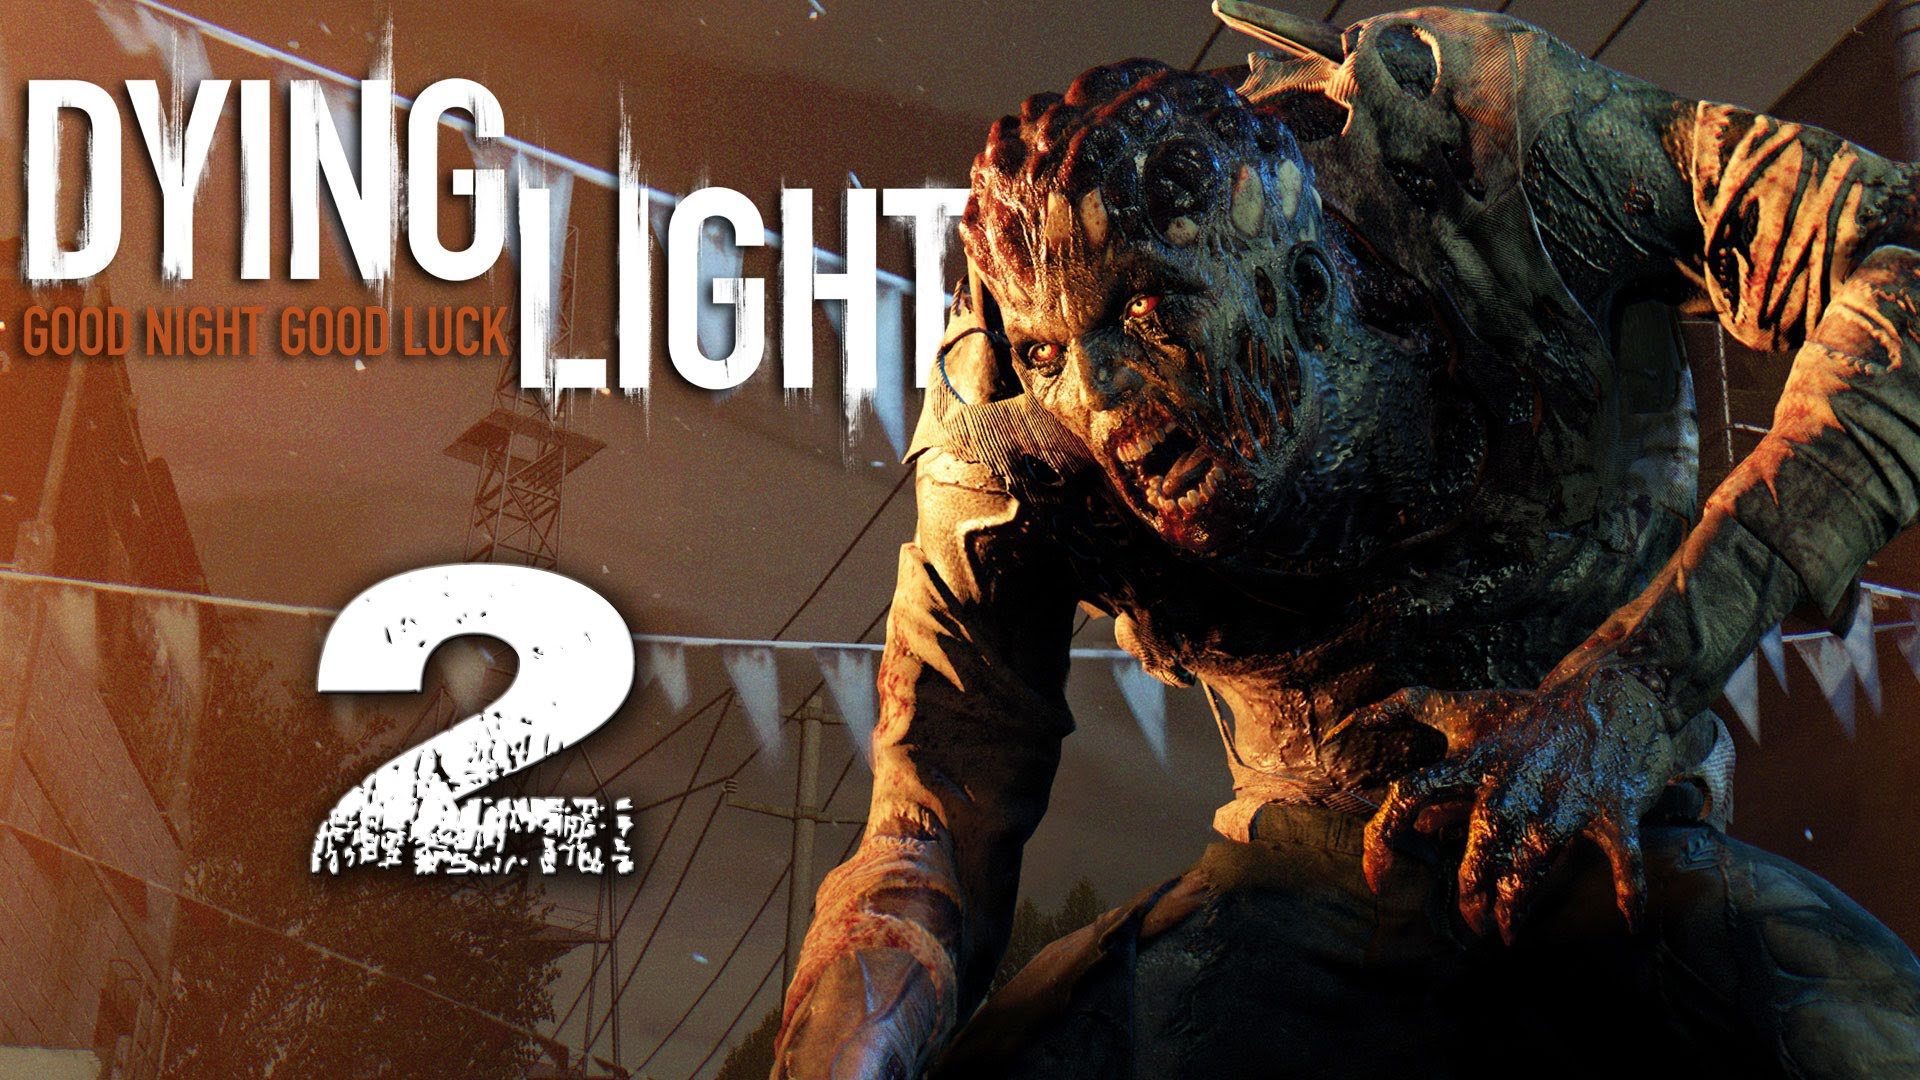 New 'Dying Light 2' First Look Video Includes Footage and